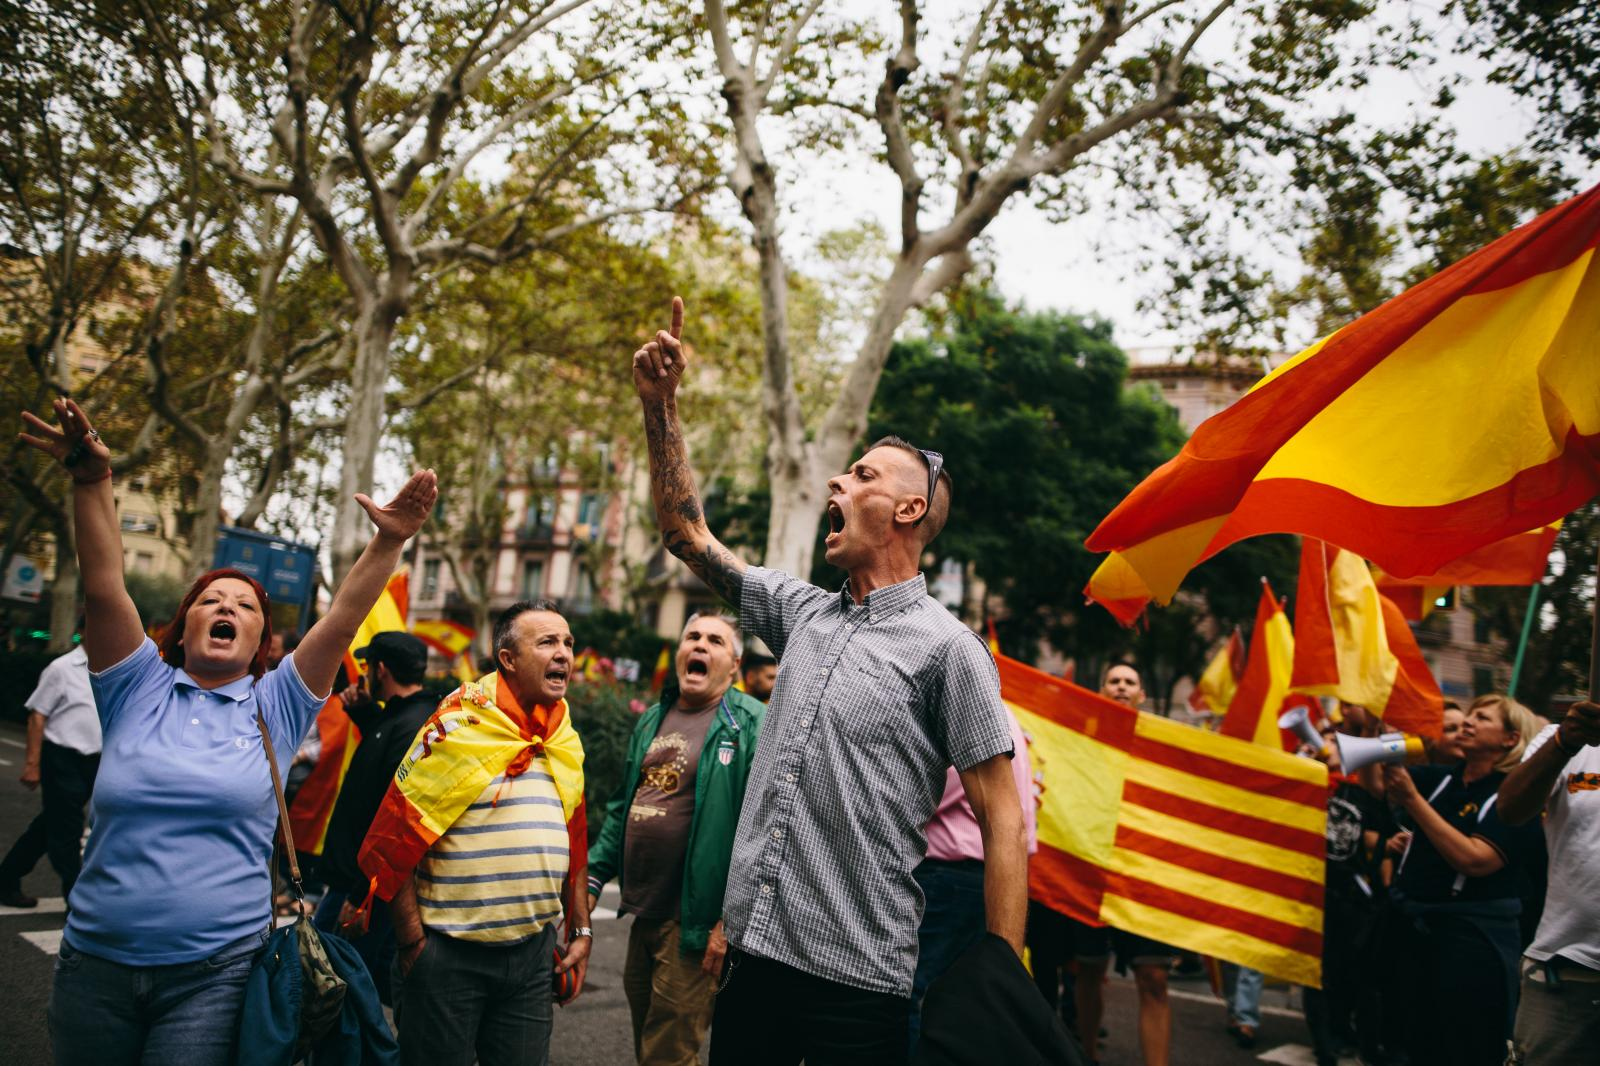 Far-right protesters chant slogans ahead of a Spanish unionist and nationalist demonstration in Barcelona. September 30th, 2017